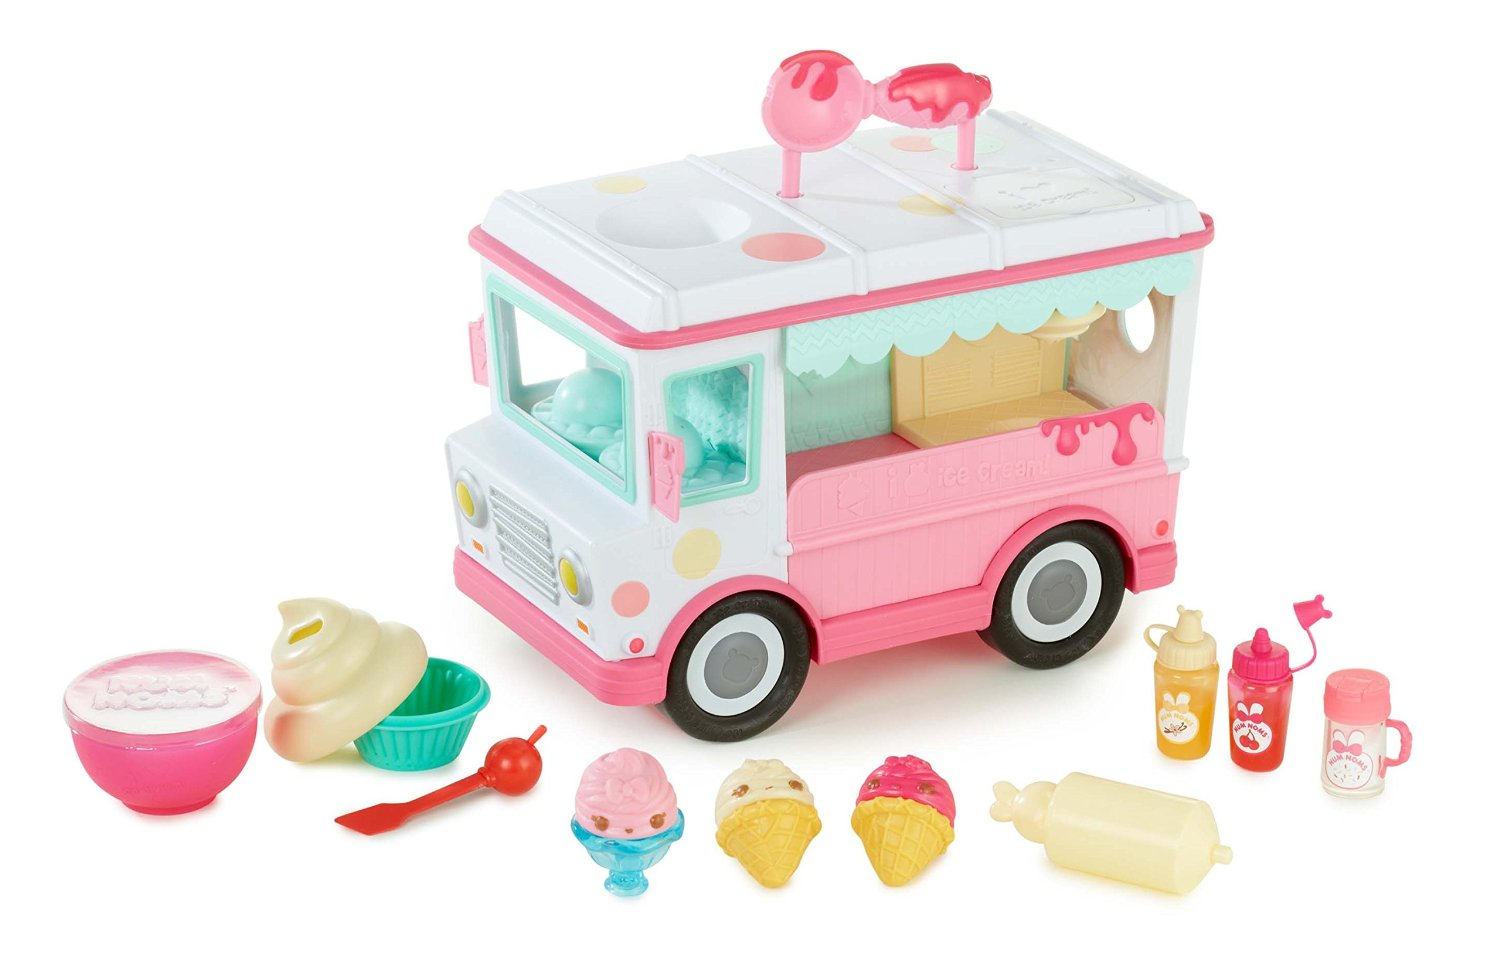 Toys For 4 : Where to buy num noms truck lip gloss craft kit